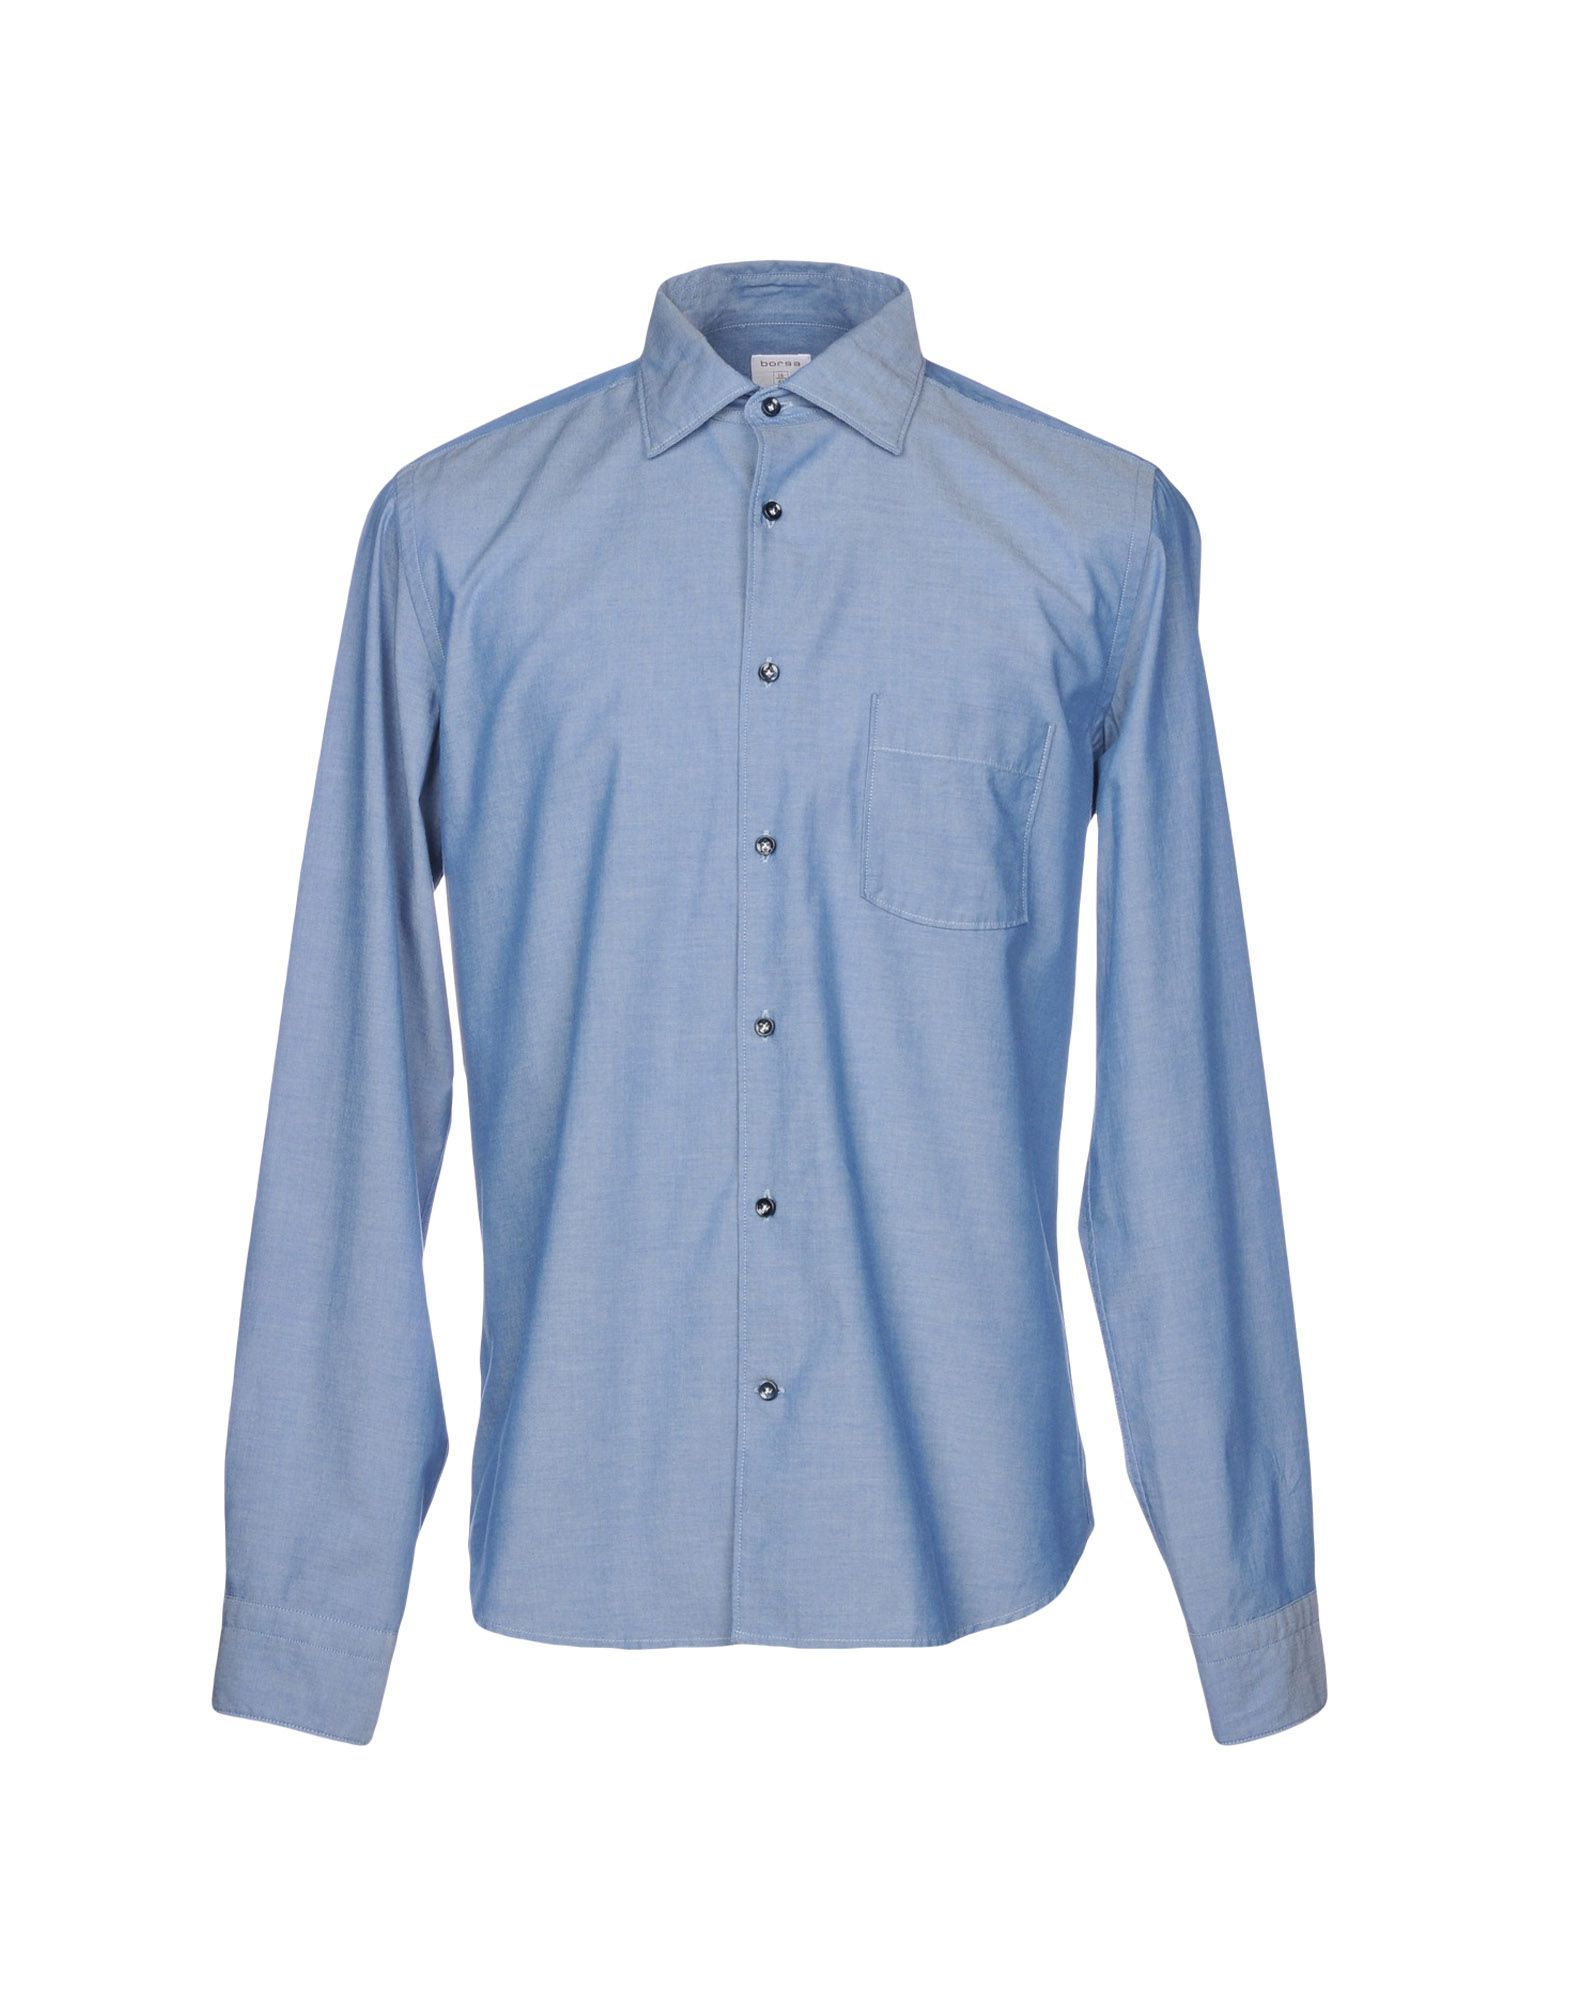 BORSA Solid Color Shirt in Blue